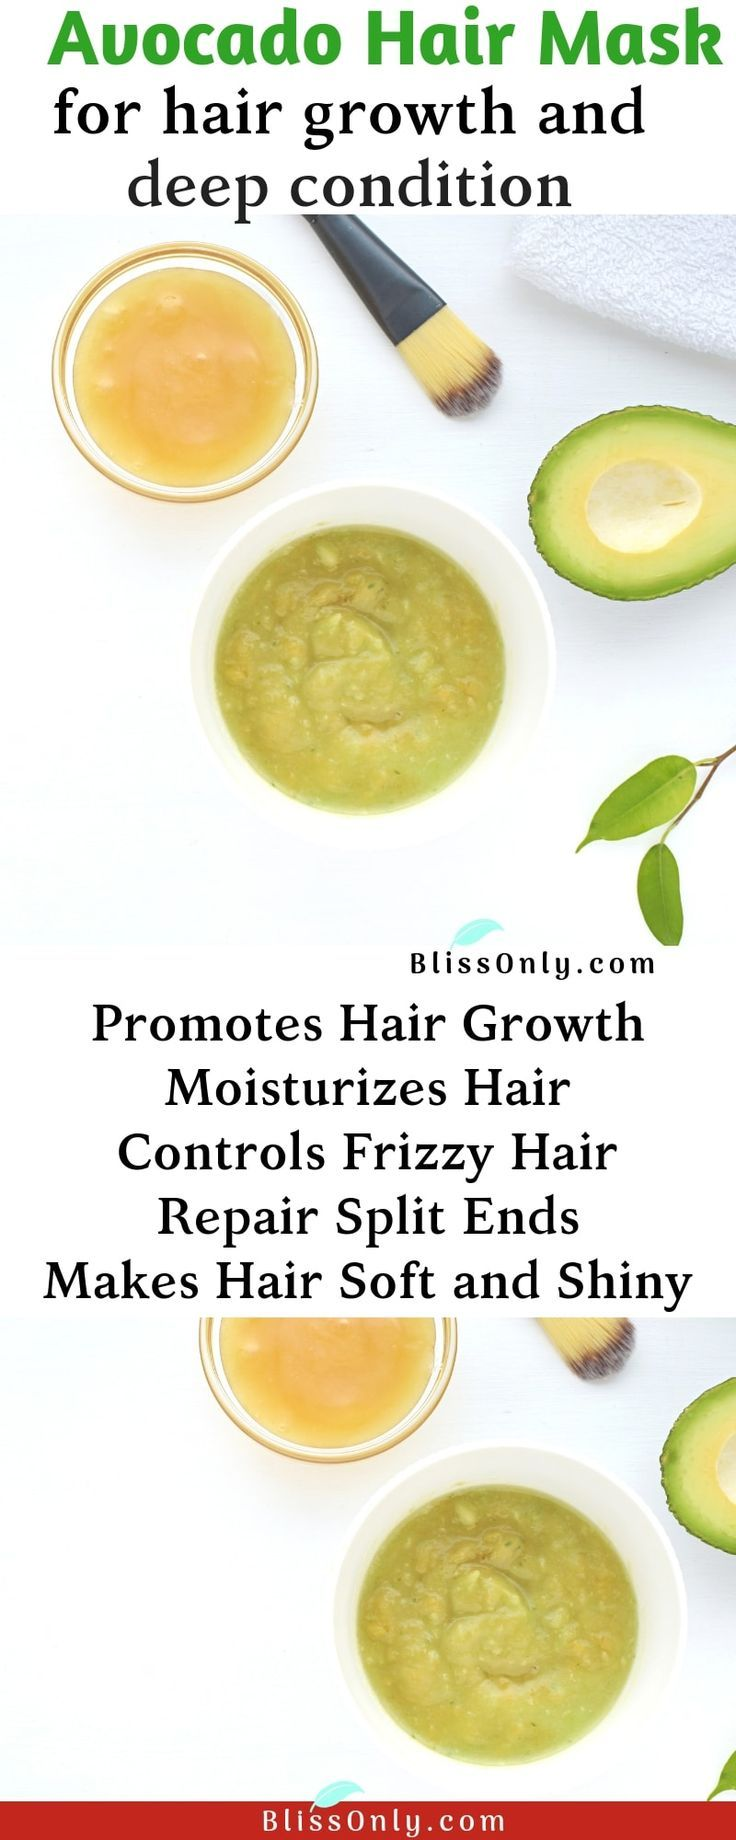 Simple Avocado Hair Masks For Hair Progress And Deep Situation